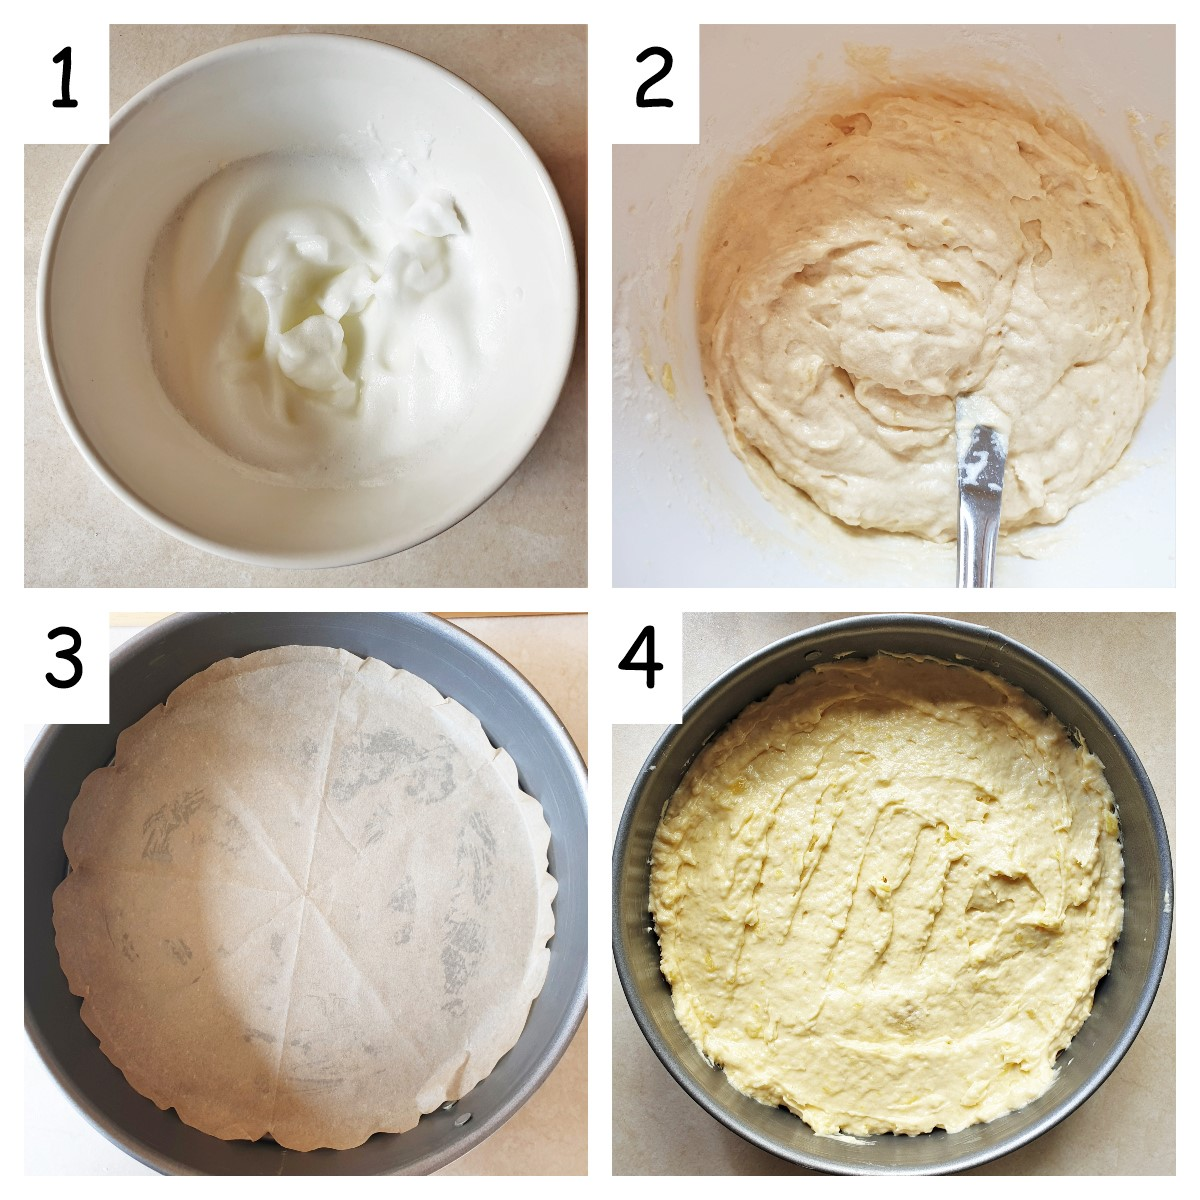 A collage of 4 images showing how to mix in the egg whites, and also how to line the baking tin.